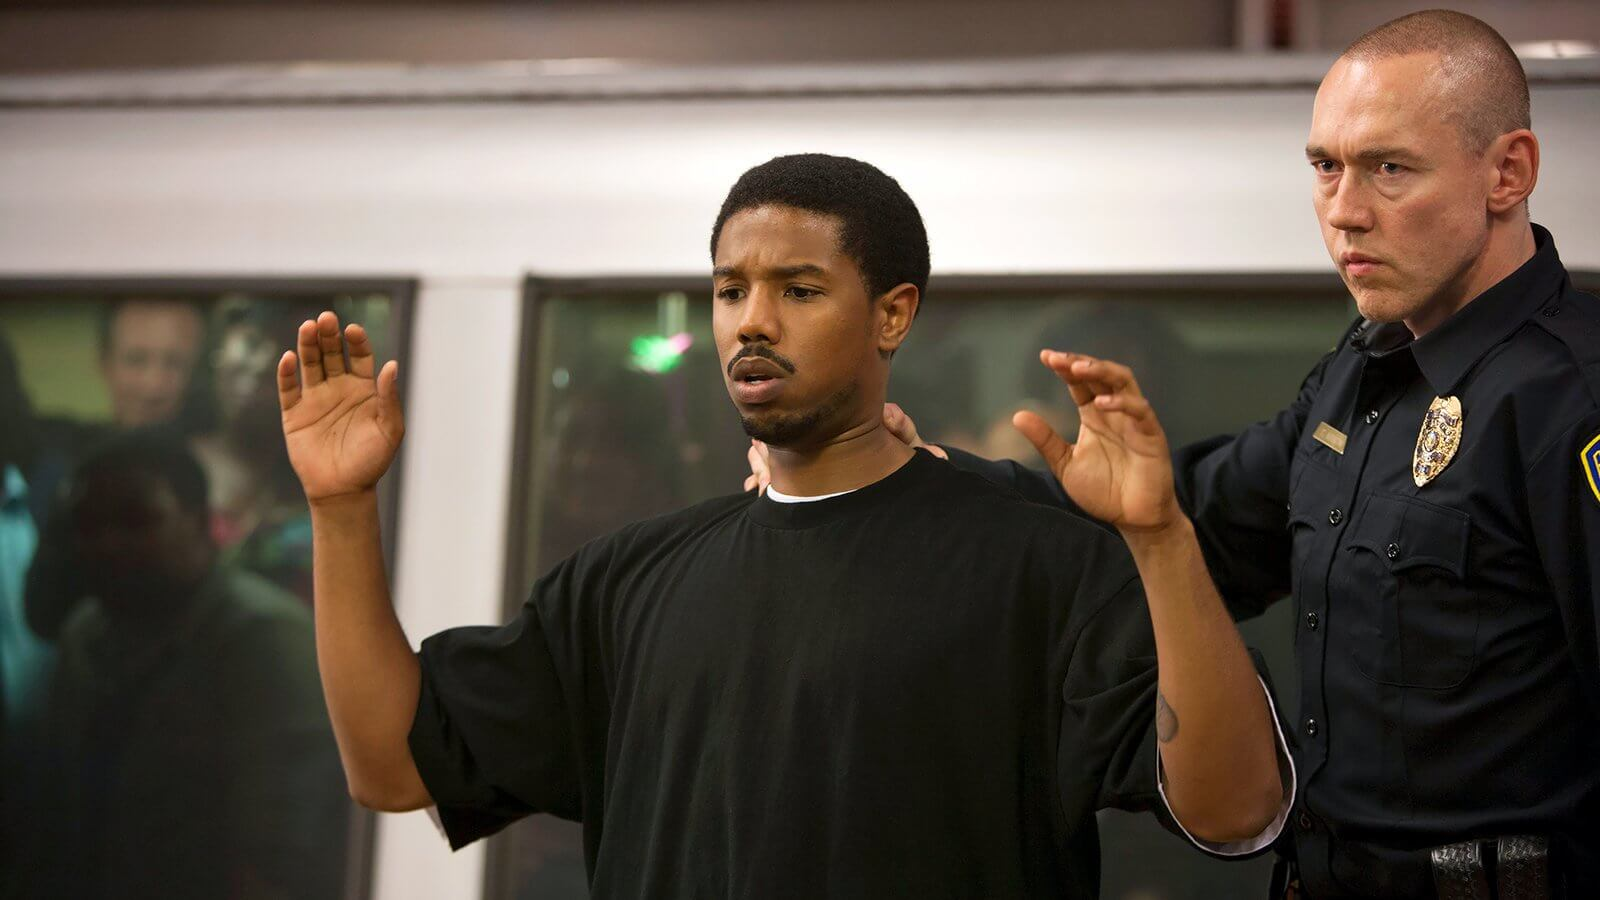 fruitvale-station-ryan-cooglar-michael-b-jordan-movie-2013